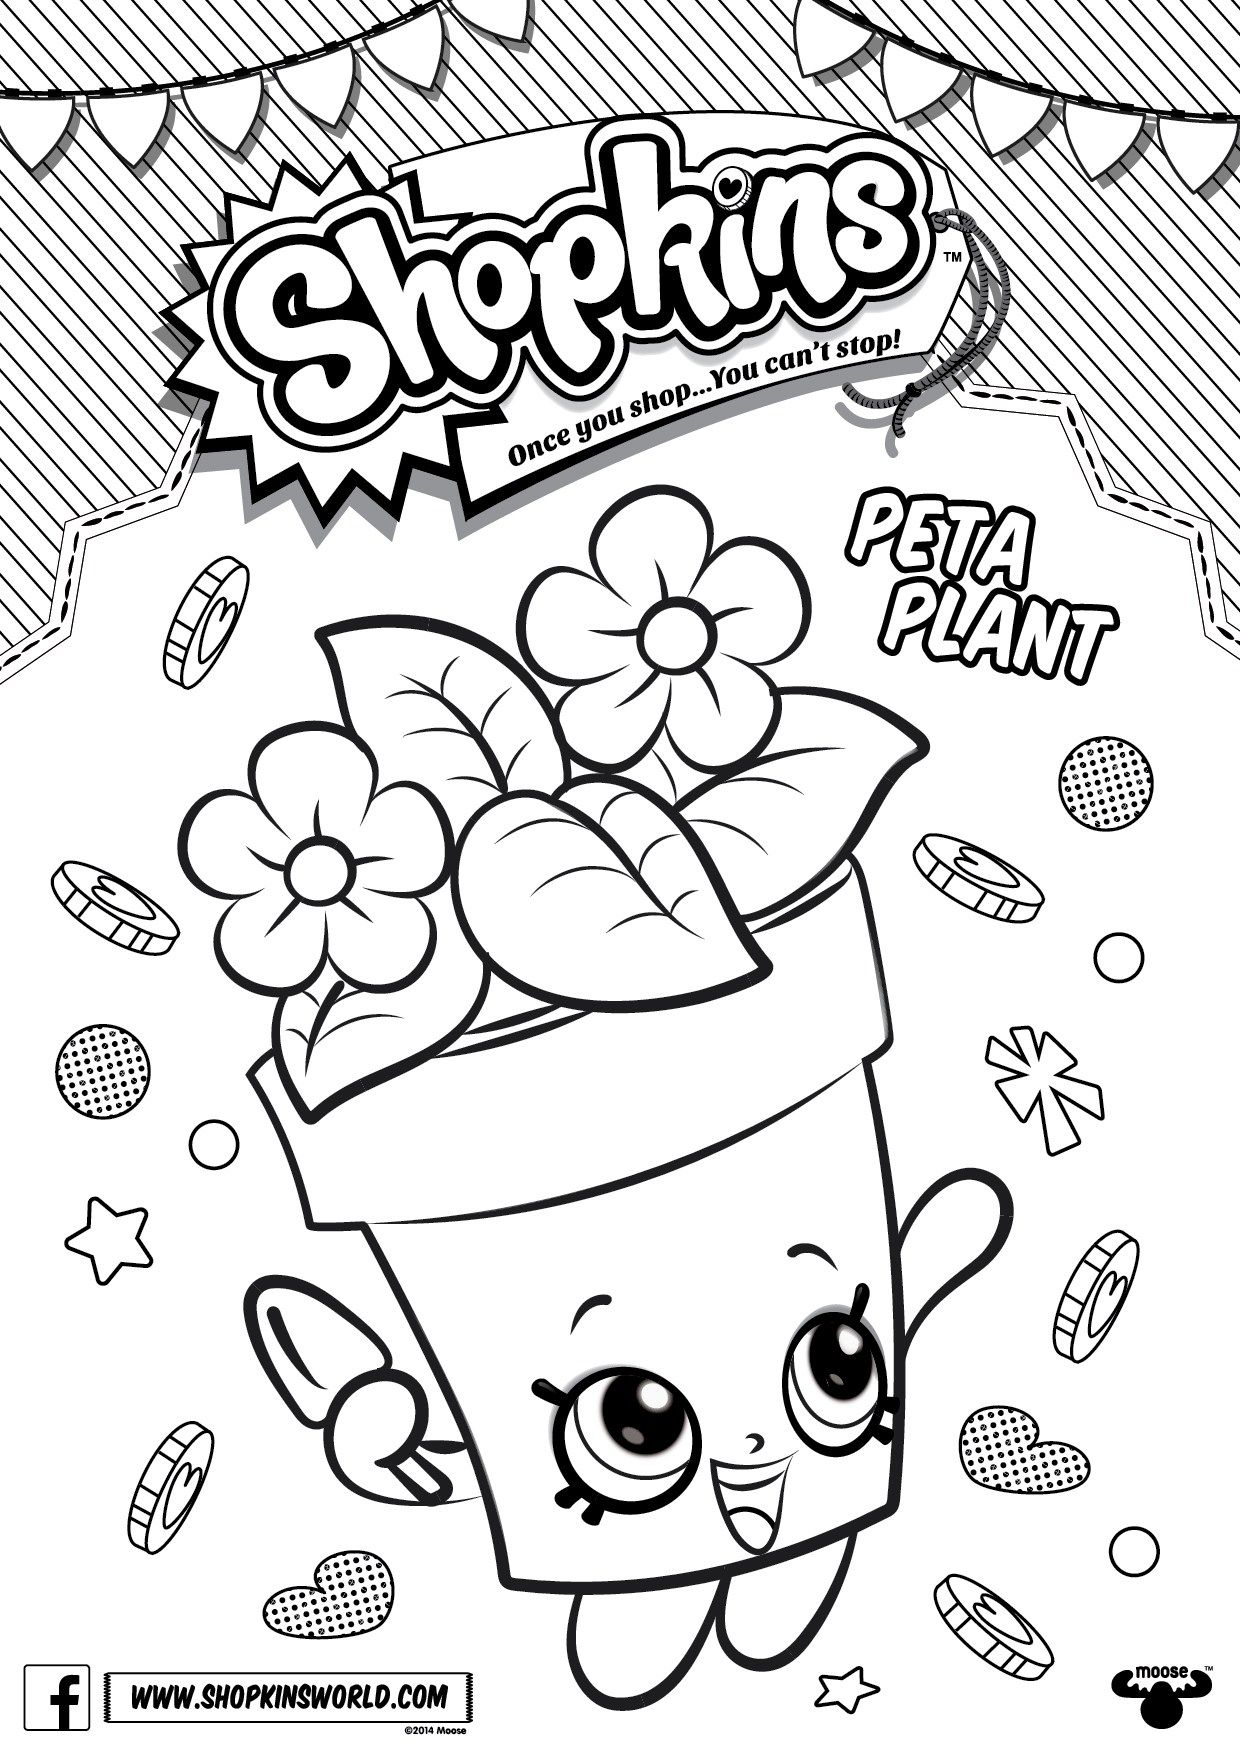 Shopkins Free Downloads Shopkins Colouring Pages Shopkin Coloring Pages Coloring Pages